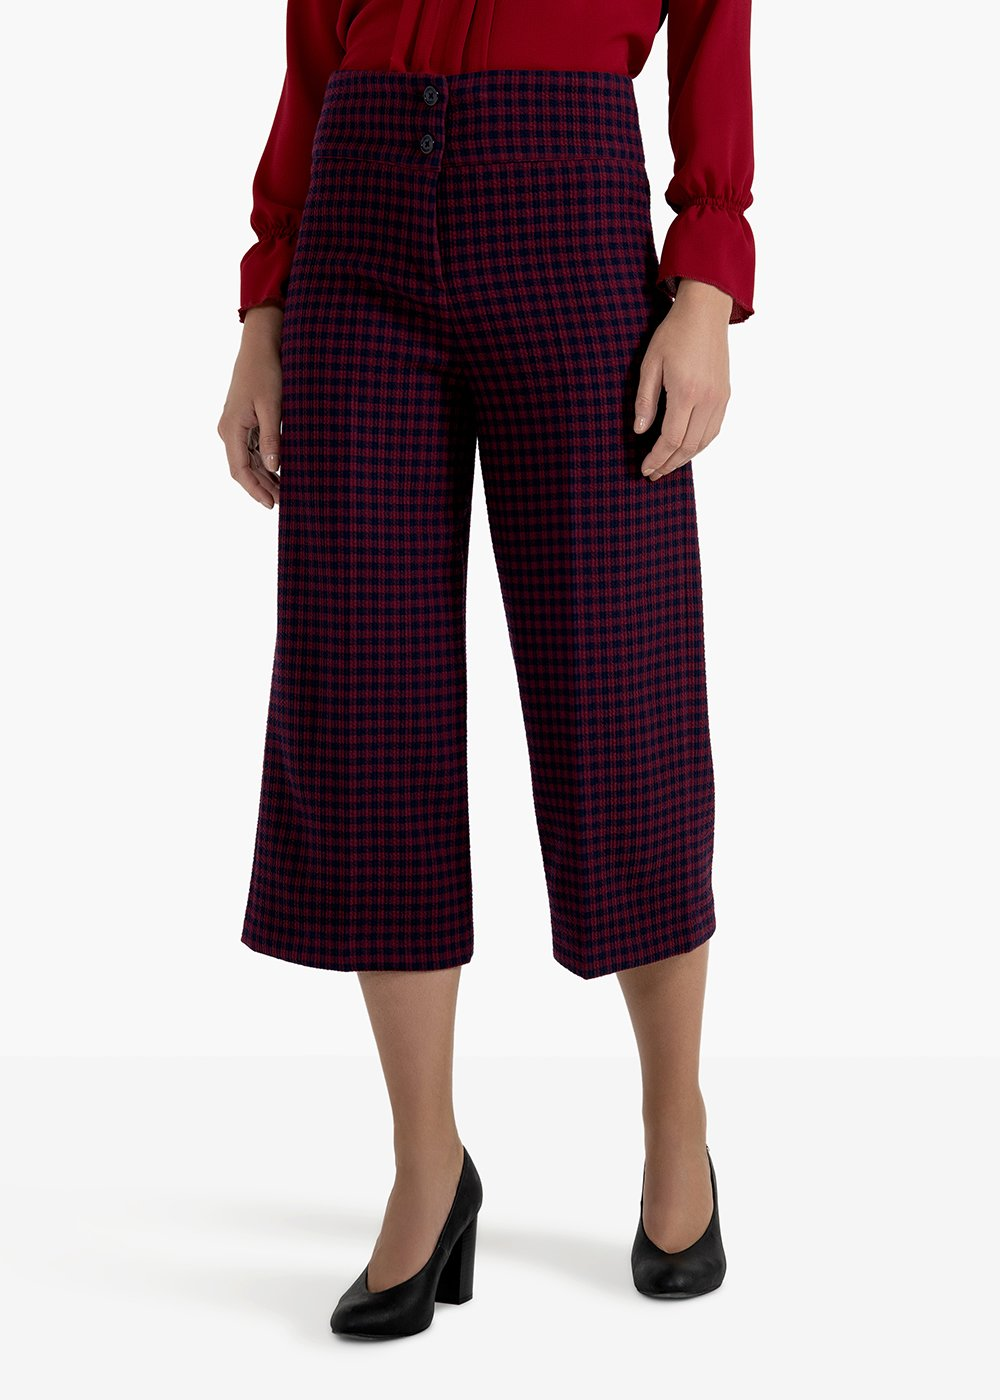 Piquet palazzo trousers with a short fit and a micro-check pattern